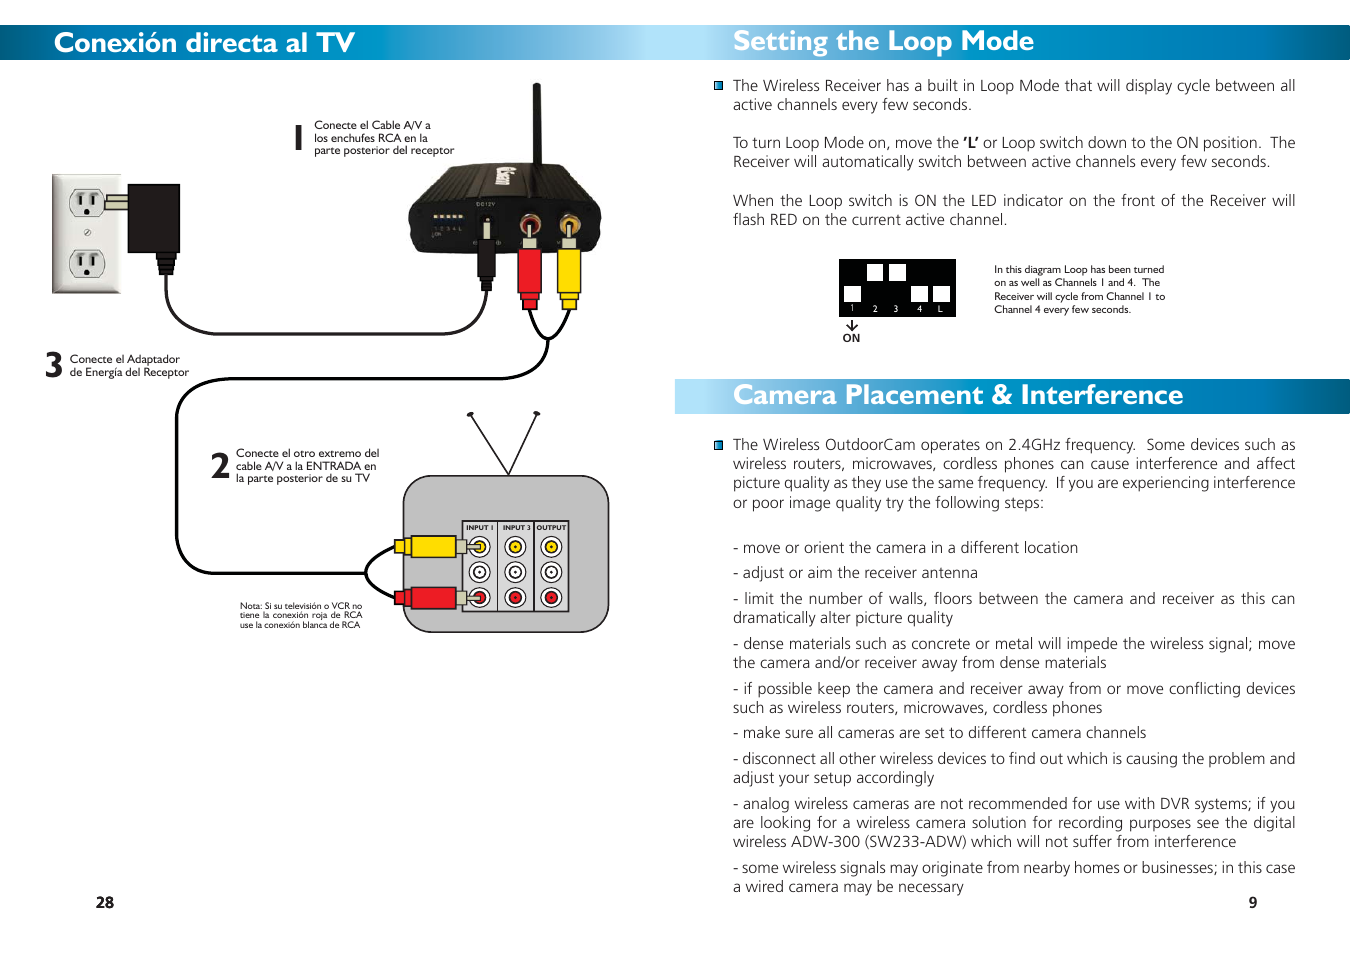 Conexin Directa Al Tv Swann Sw231 Woy User Manual Page 9 12 Wireless Camera Diagram